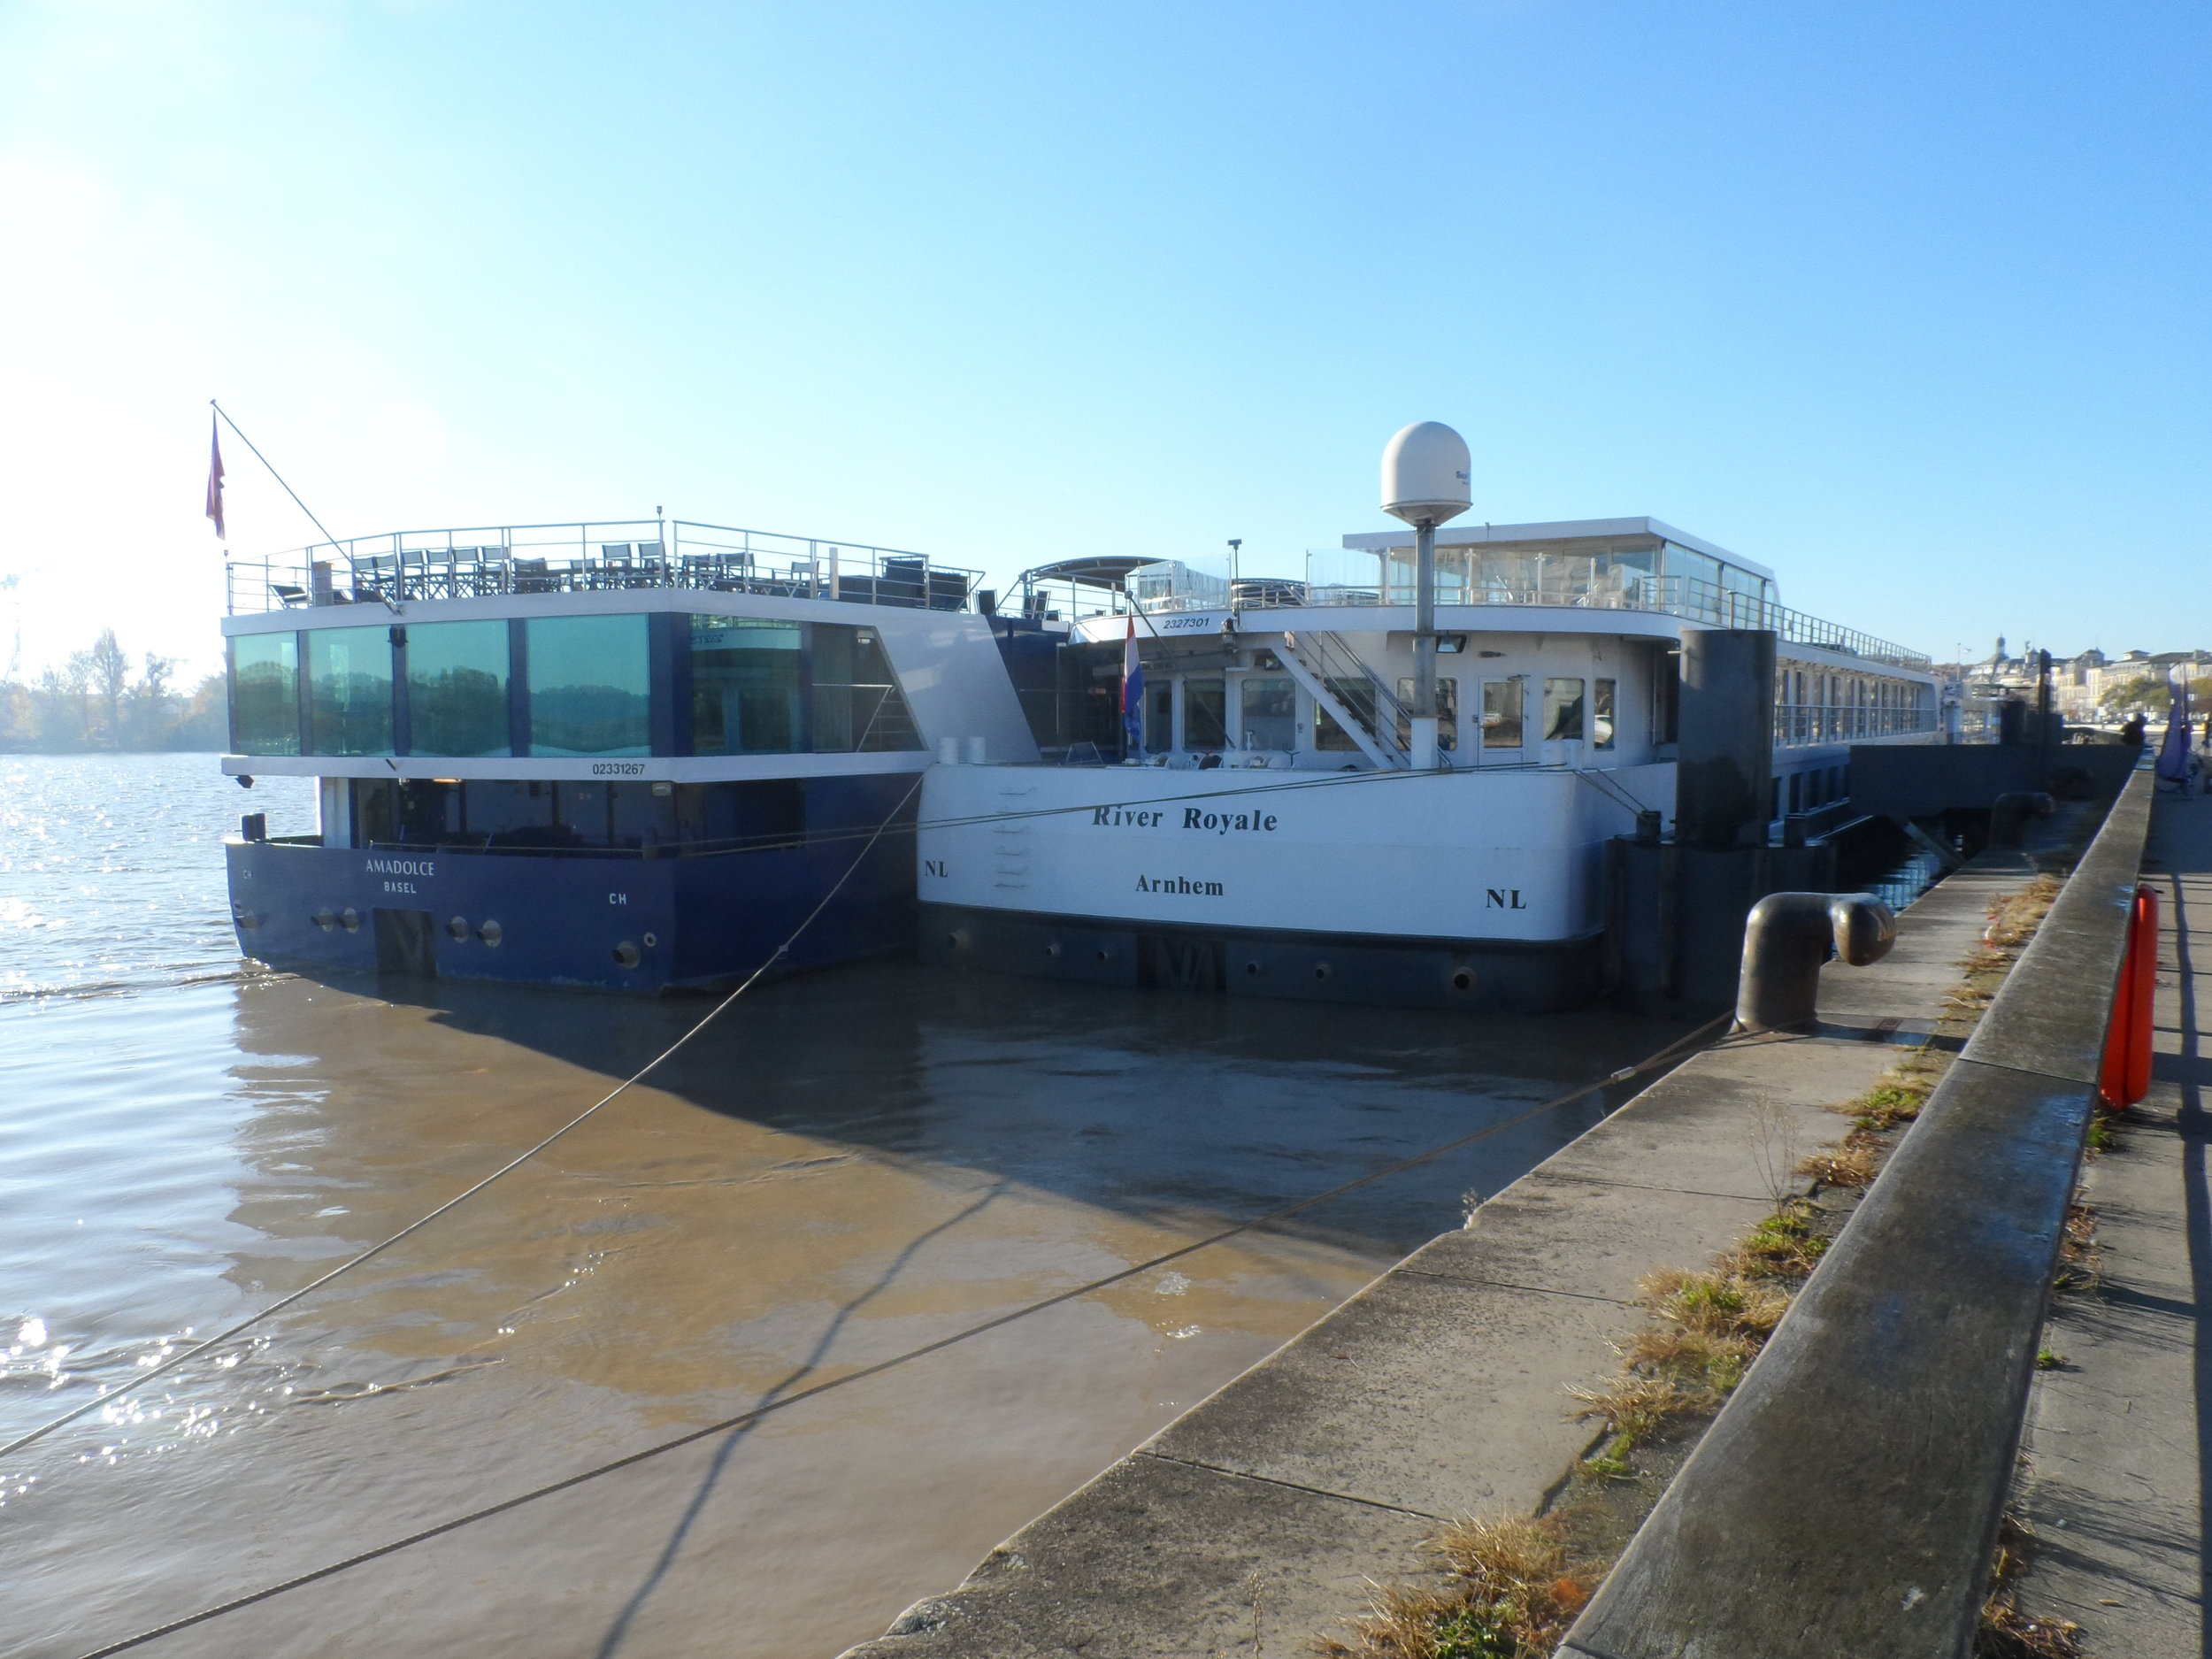 Two great riverships rafted together—the AmaDolce of AmaWaterways and Uniworld's River Royale—which is better for your vacation?